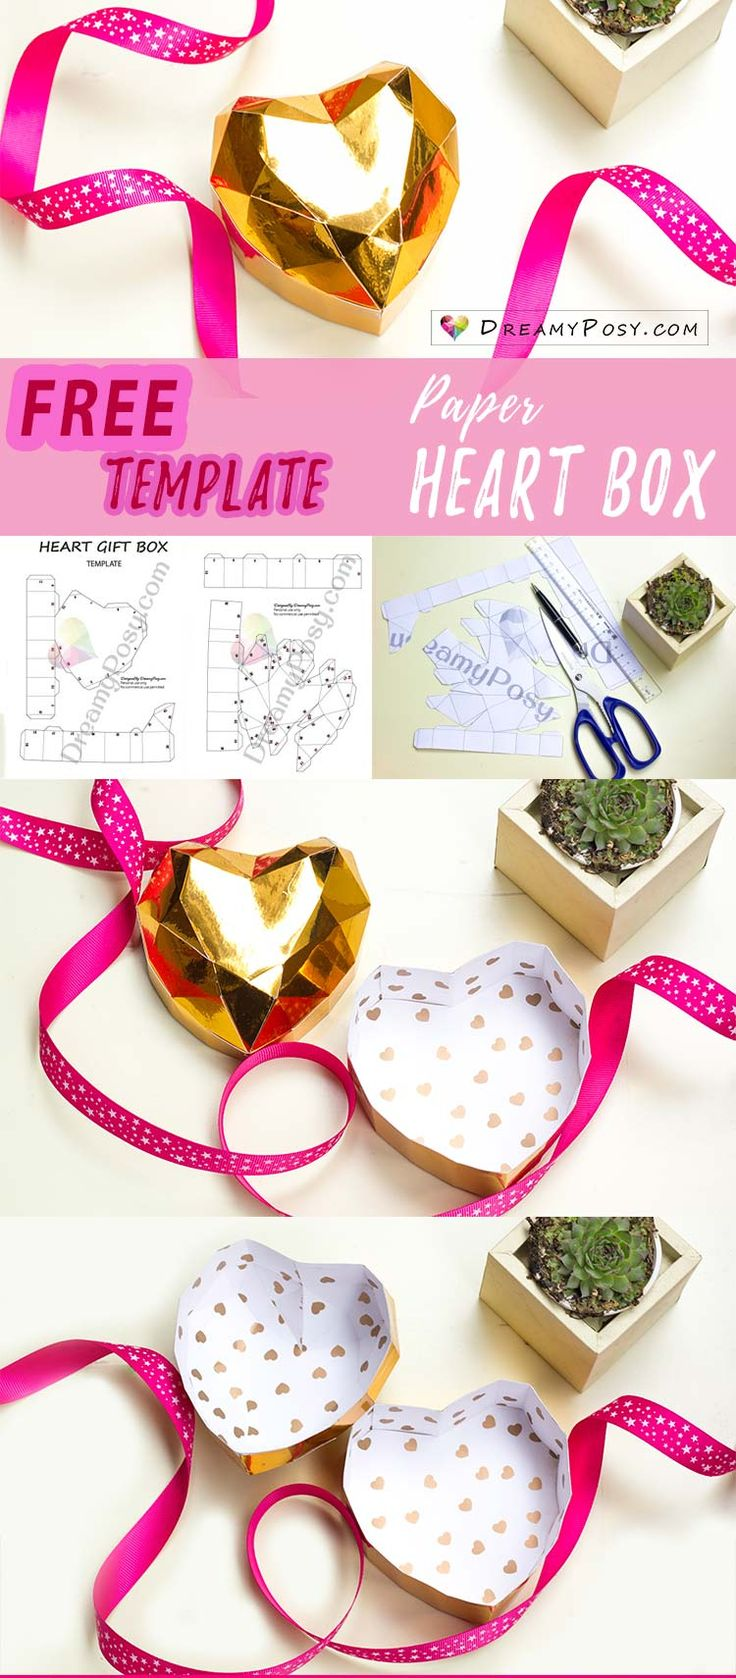 Make your 3D heart box for Valentine's Day with my free template, just more than 1 hour to complete. So easy and you could custom your size, color, theme. #lowpoly #heartbox #papercraft #paperheart #valentine